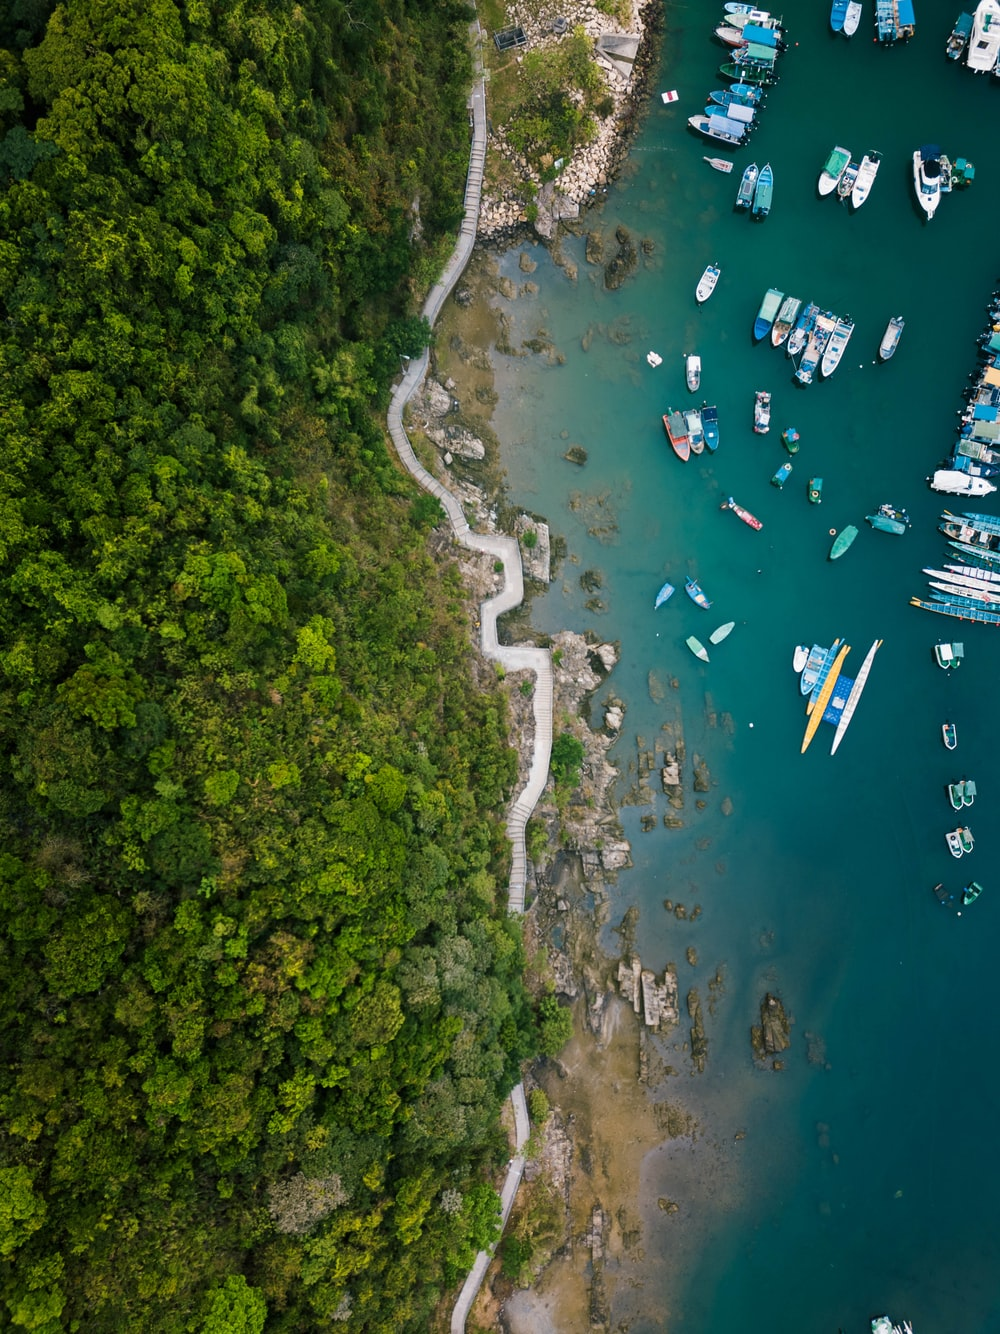 bird's eye view of shore with boats